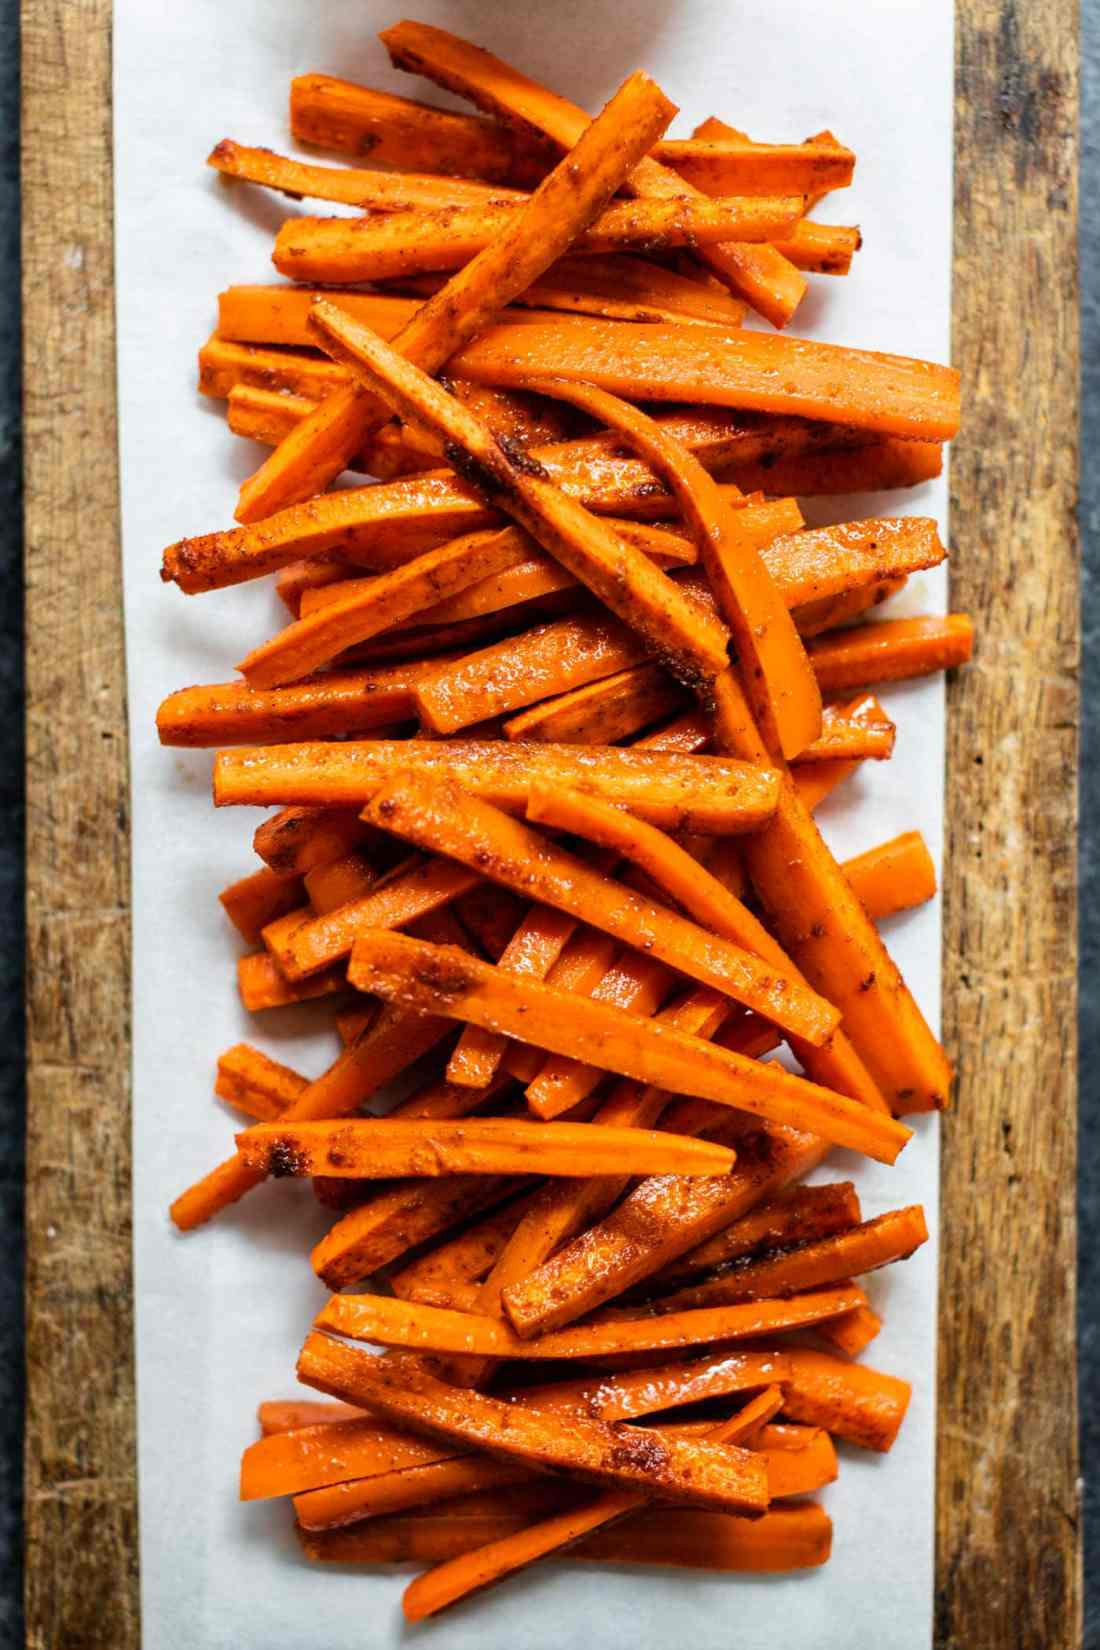 Orange harissa roasted carrots piled on a piece of parchment on a brown cutting board all on gray concrete surface